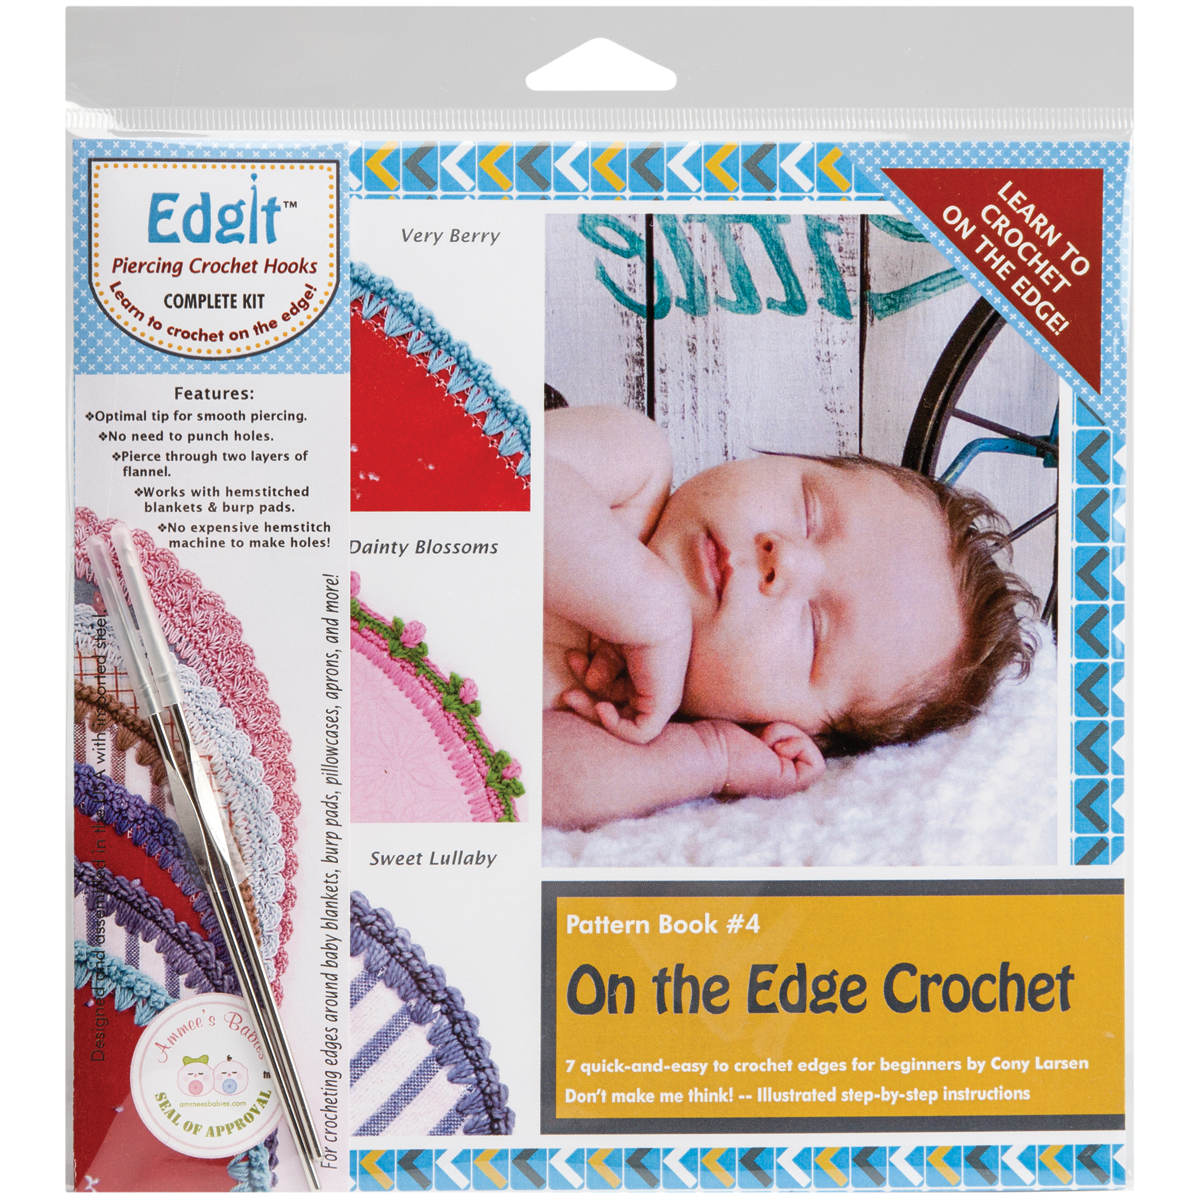 Edgit Piercing Crochet Hook & Book Set - On The Edge Crochet